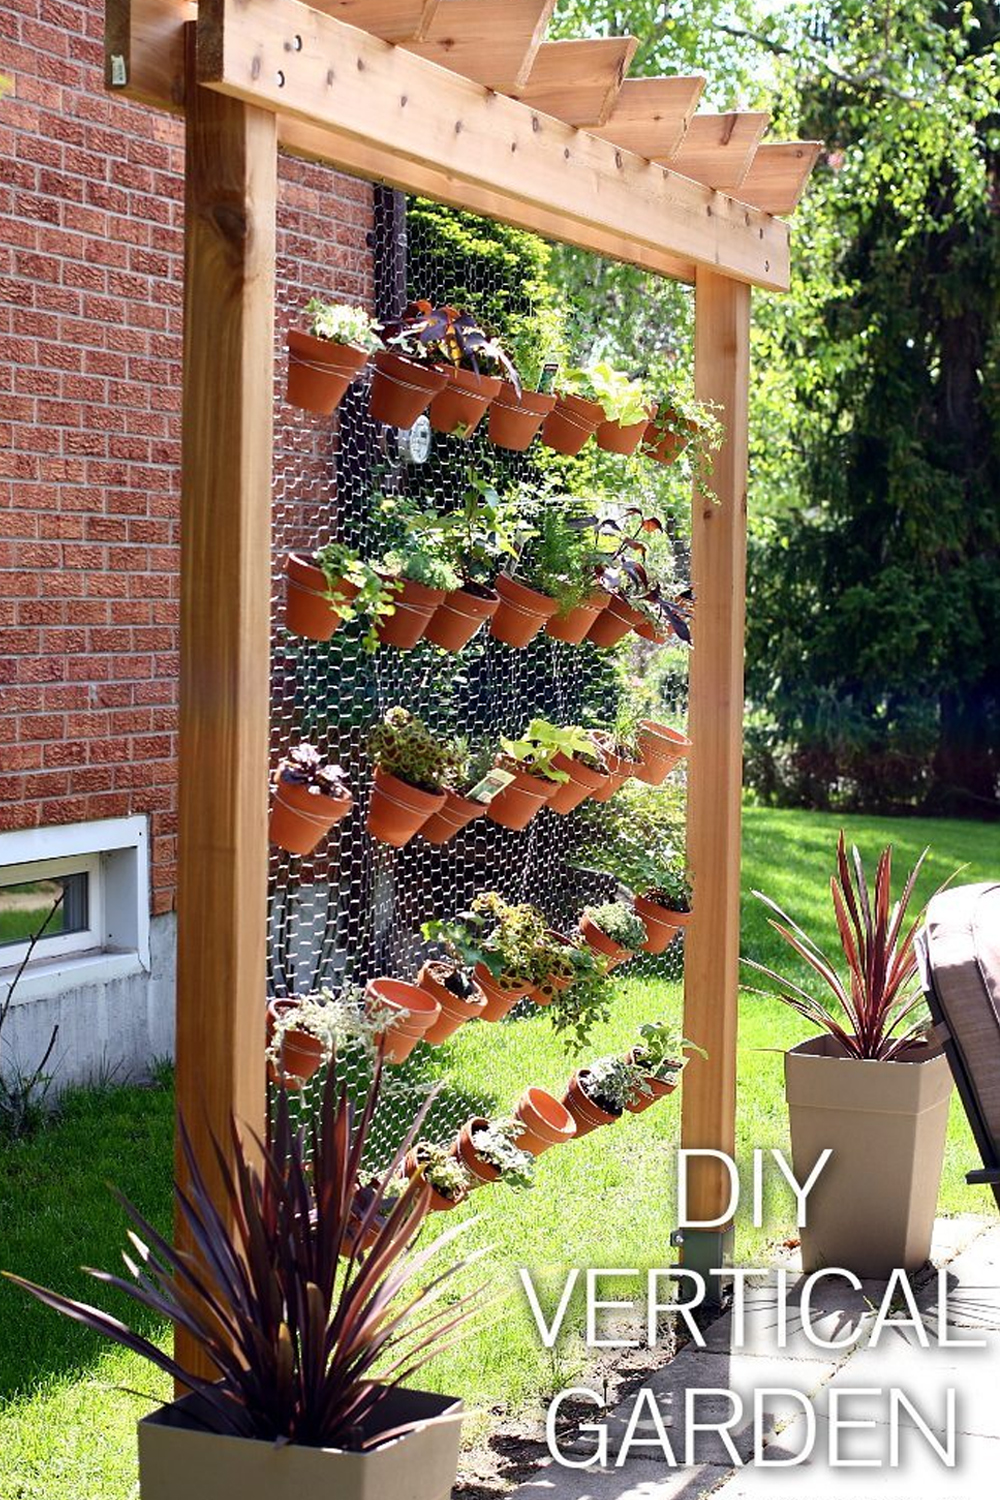 DIY Vertical Garden Wall